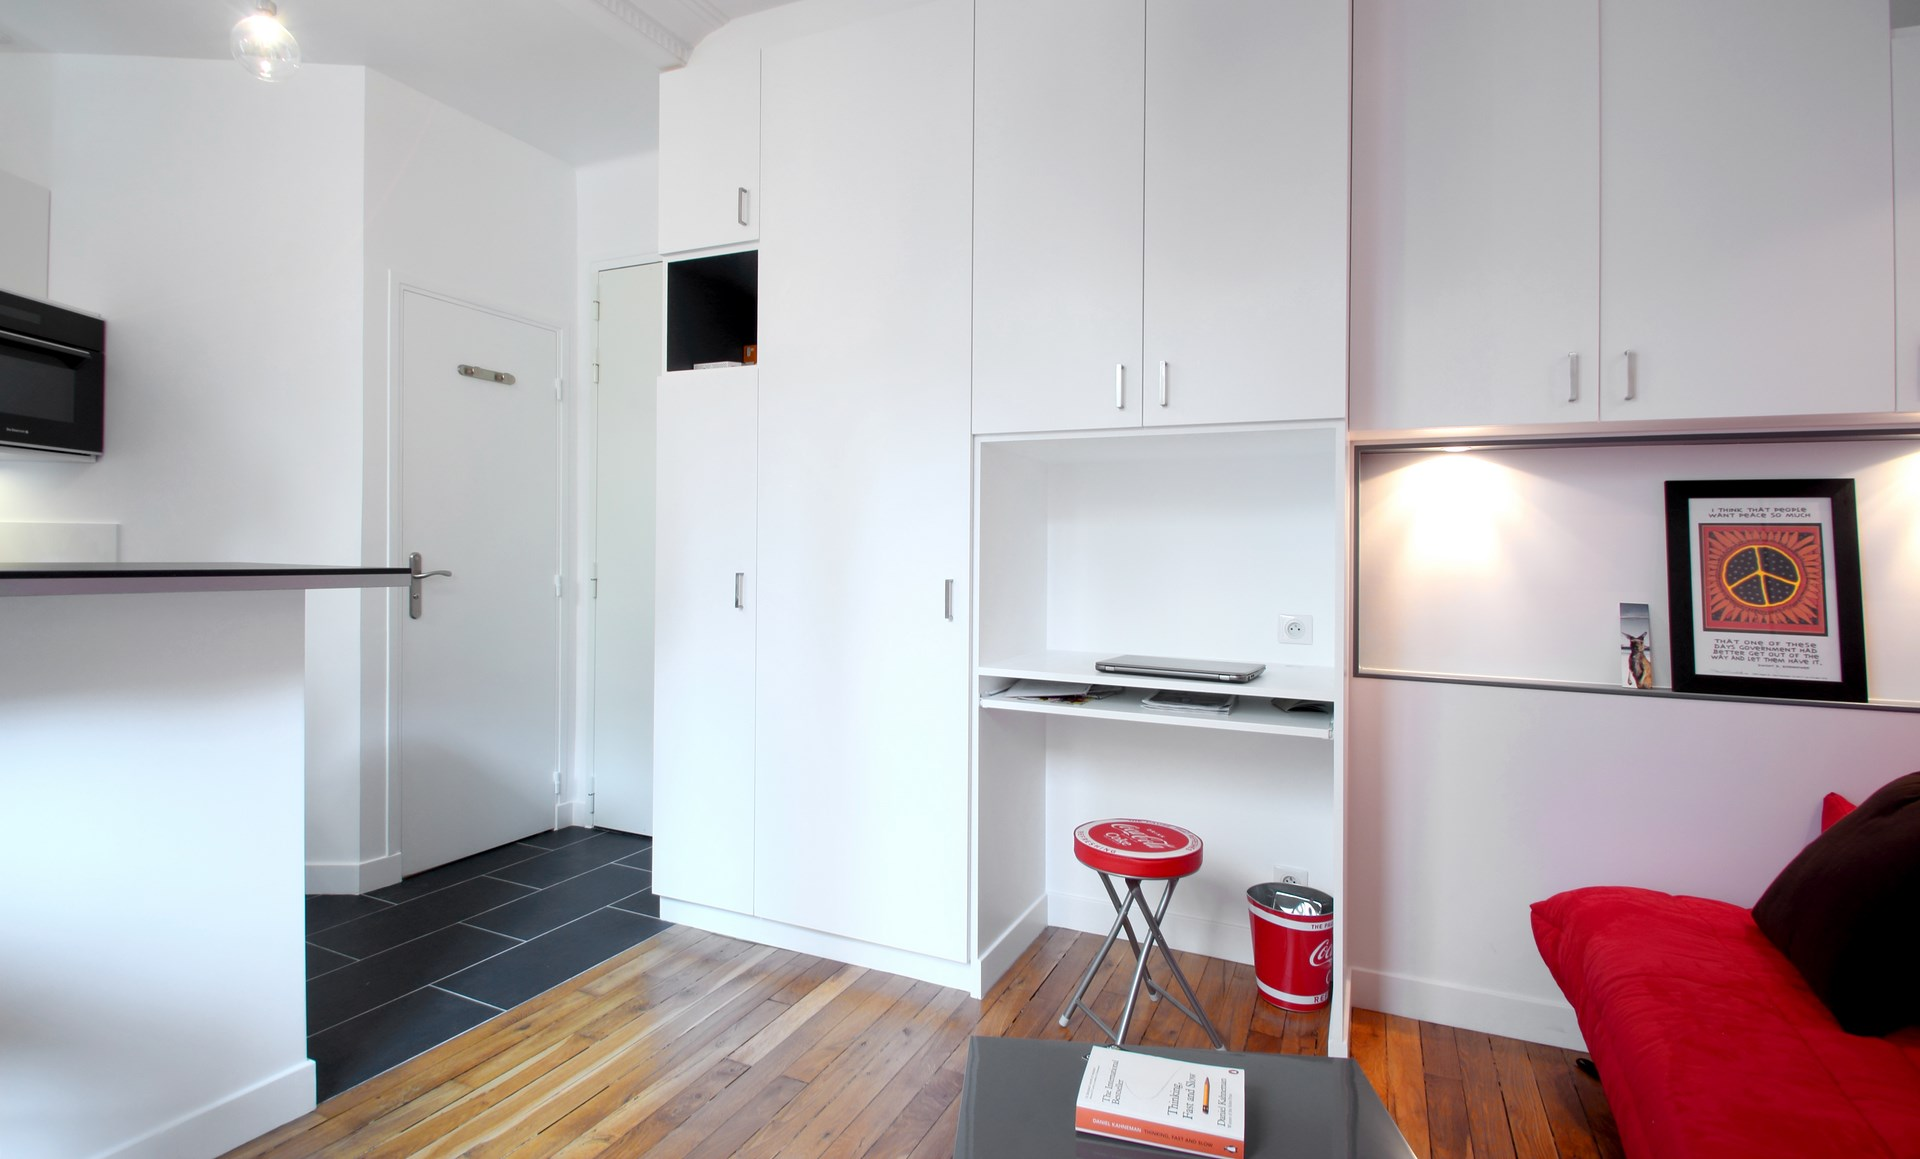 Optimisation studio 17 m2 buttes chaumont paris agence avous - Bureau de change paris 17 ...